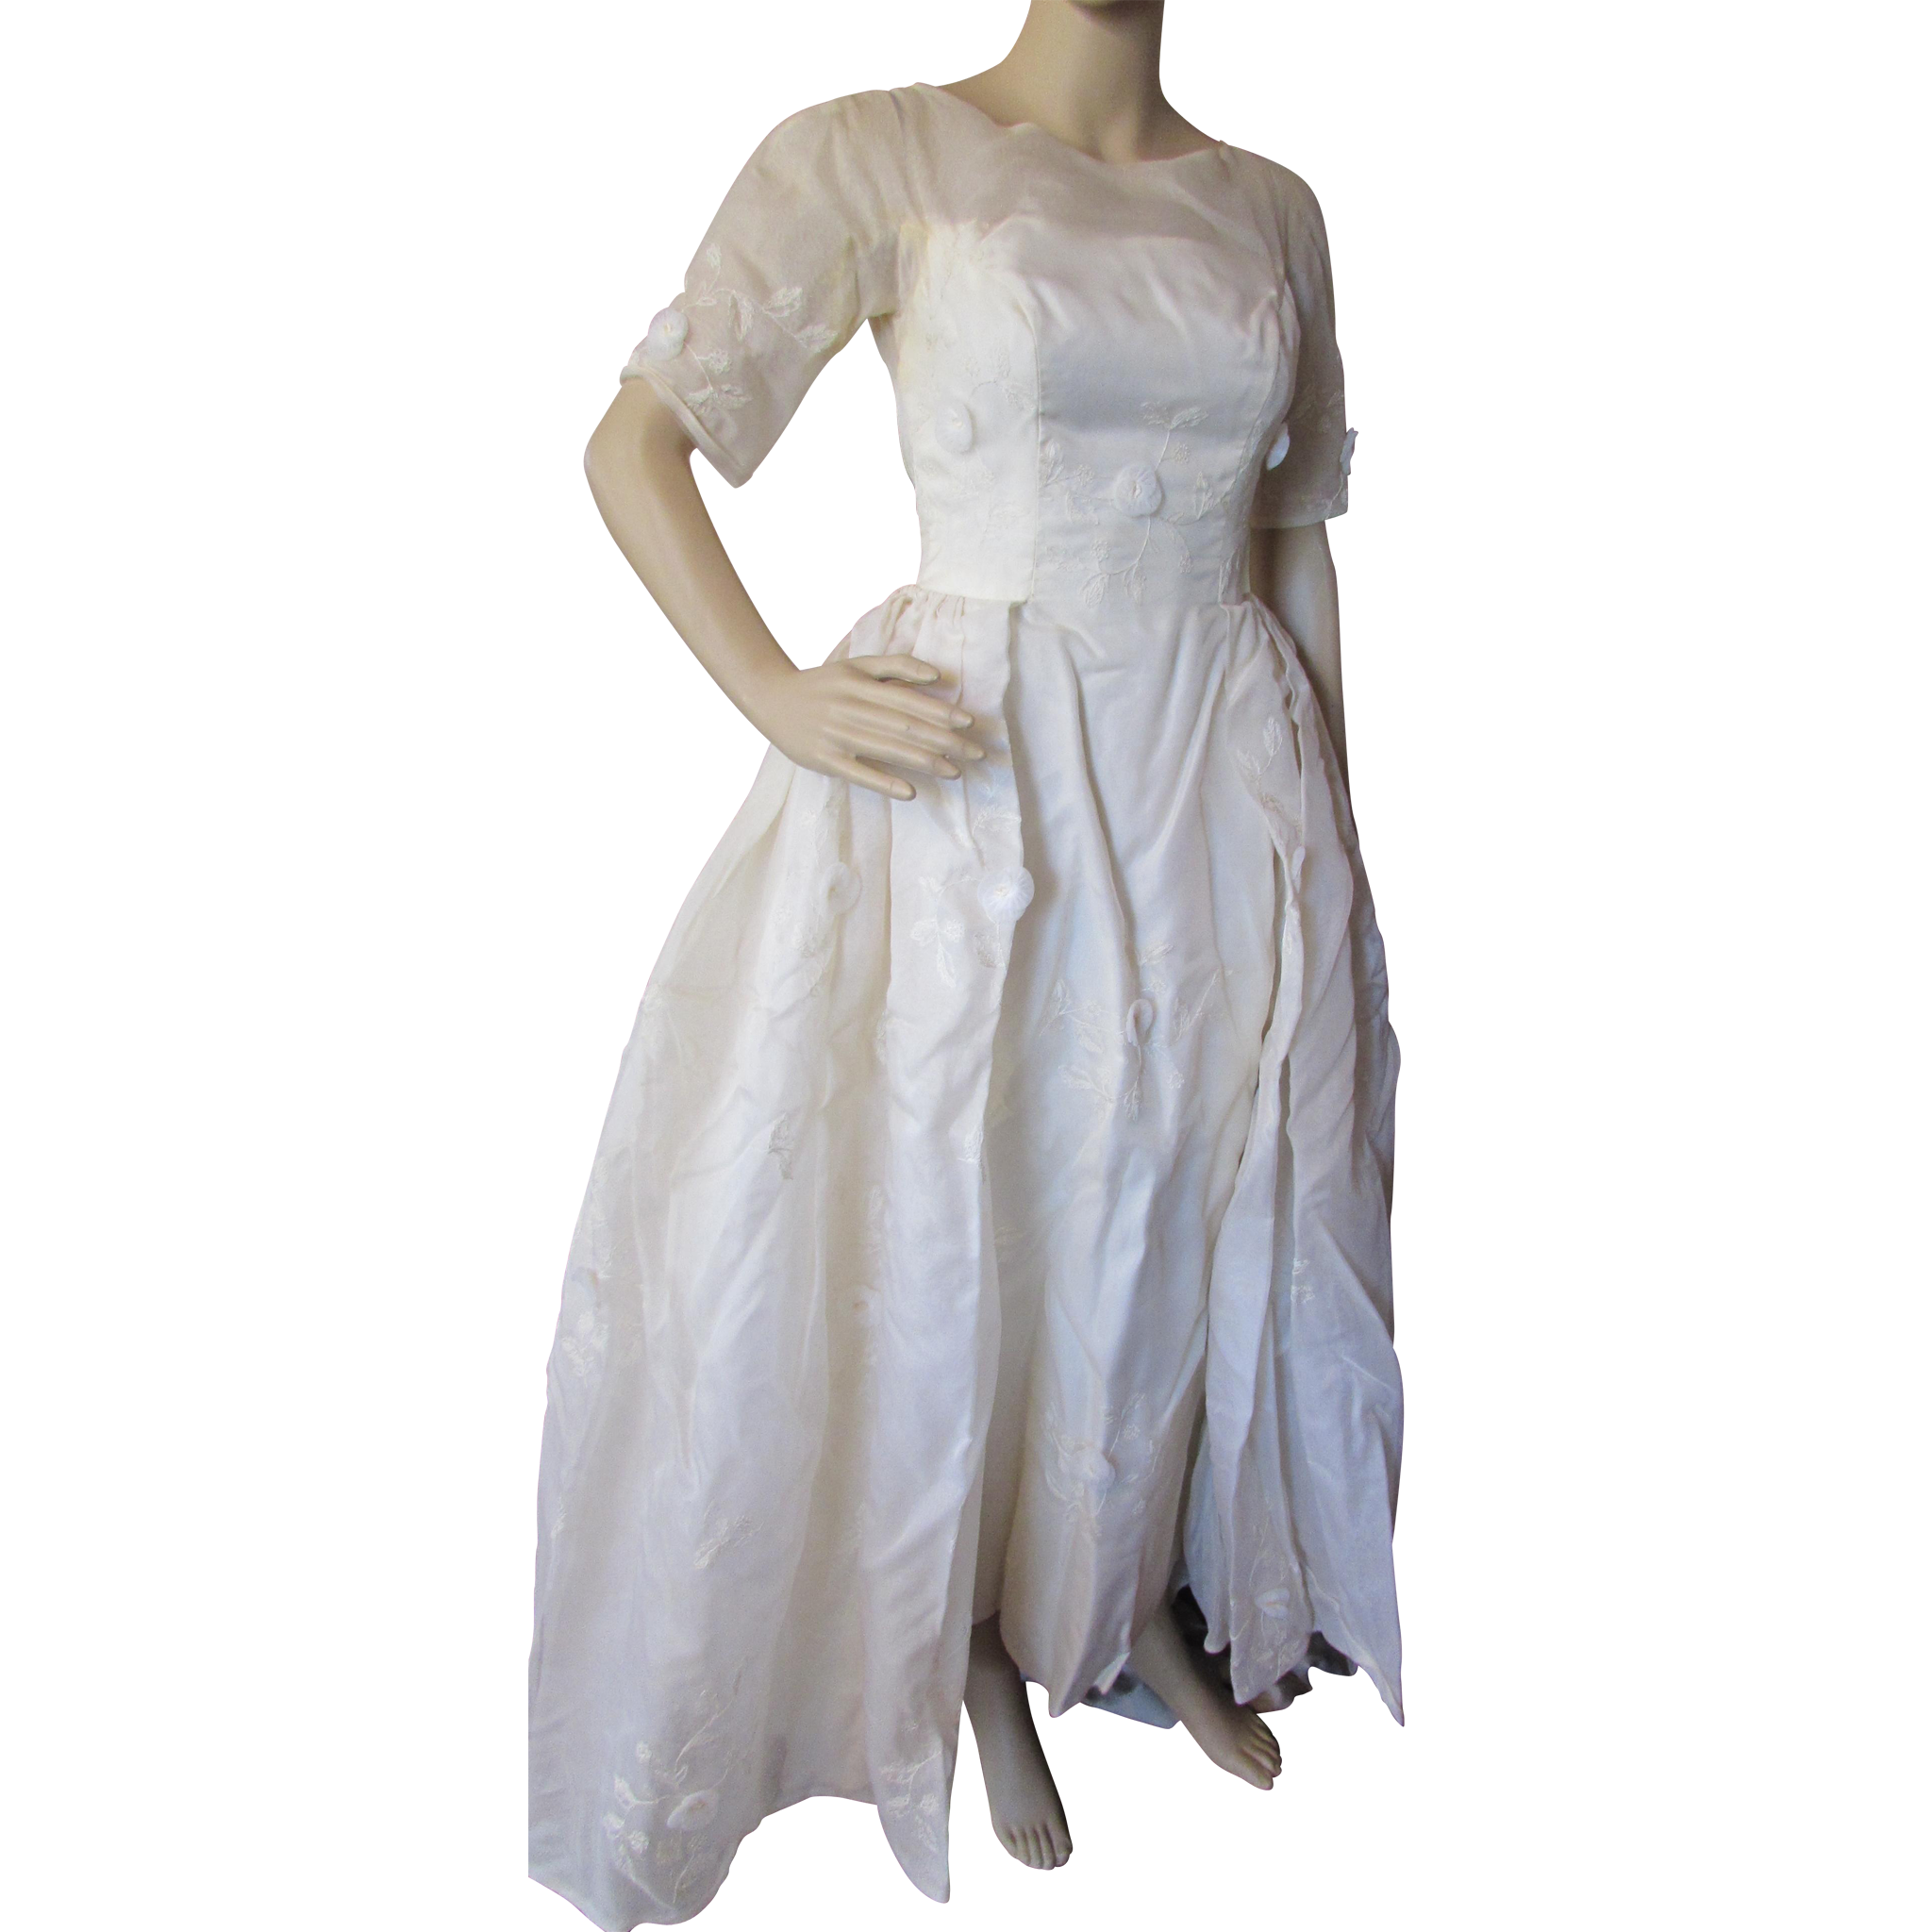 Summer Wedding Dress in Organdy with Flower Appliques '80's/'90's